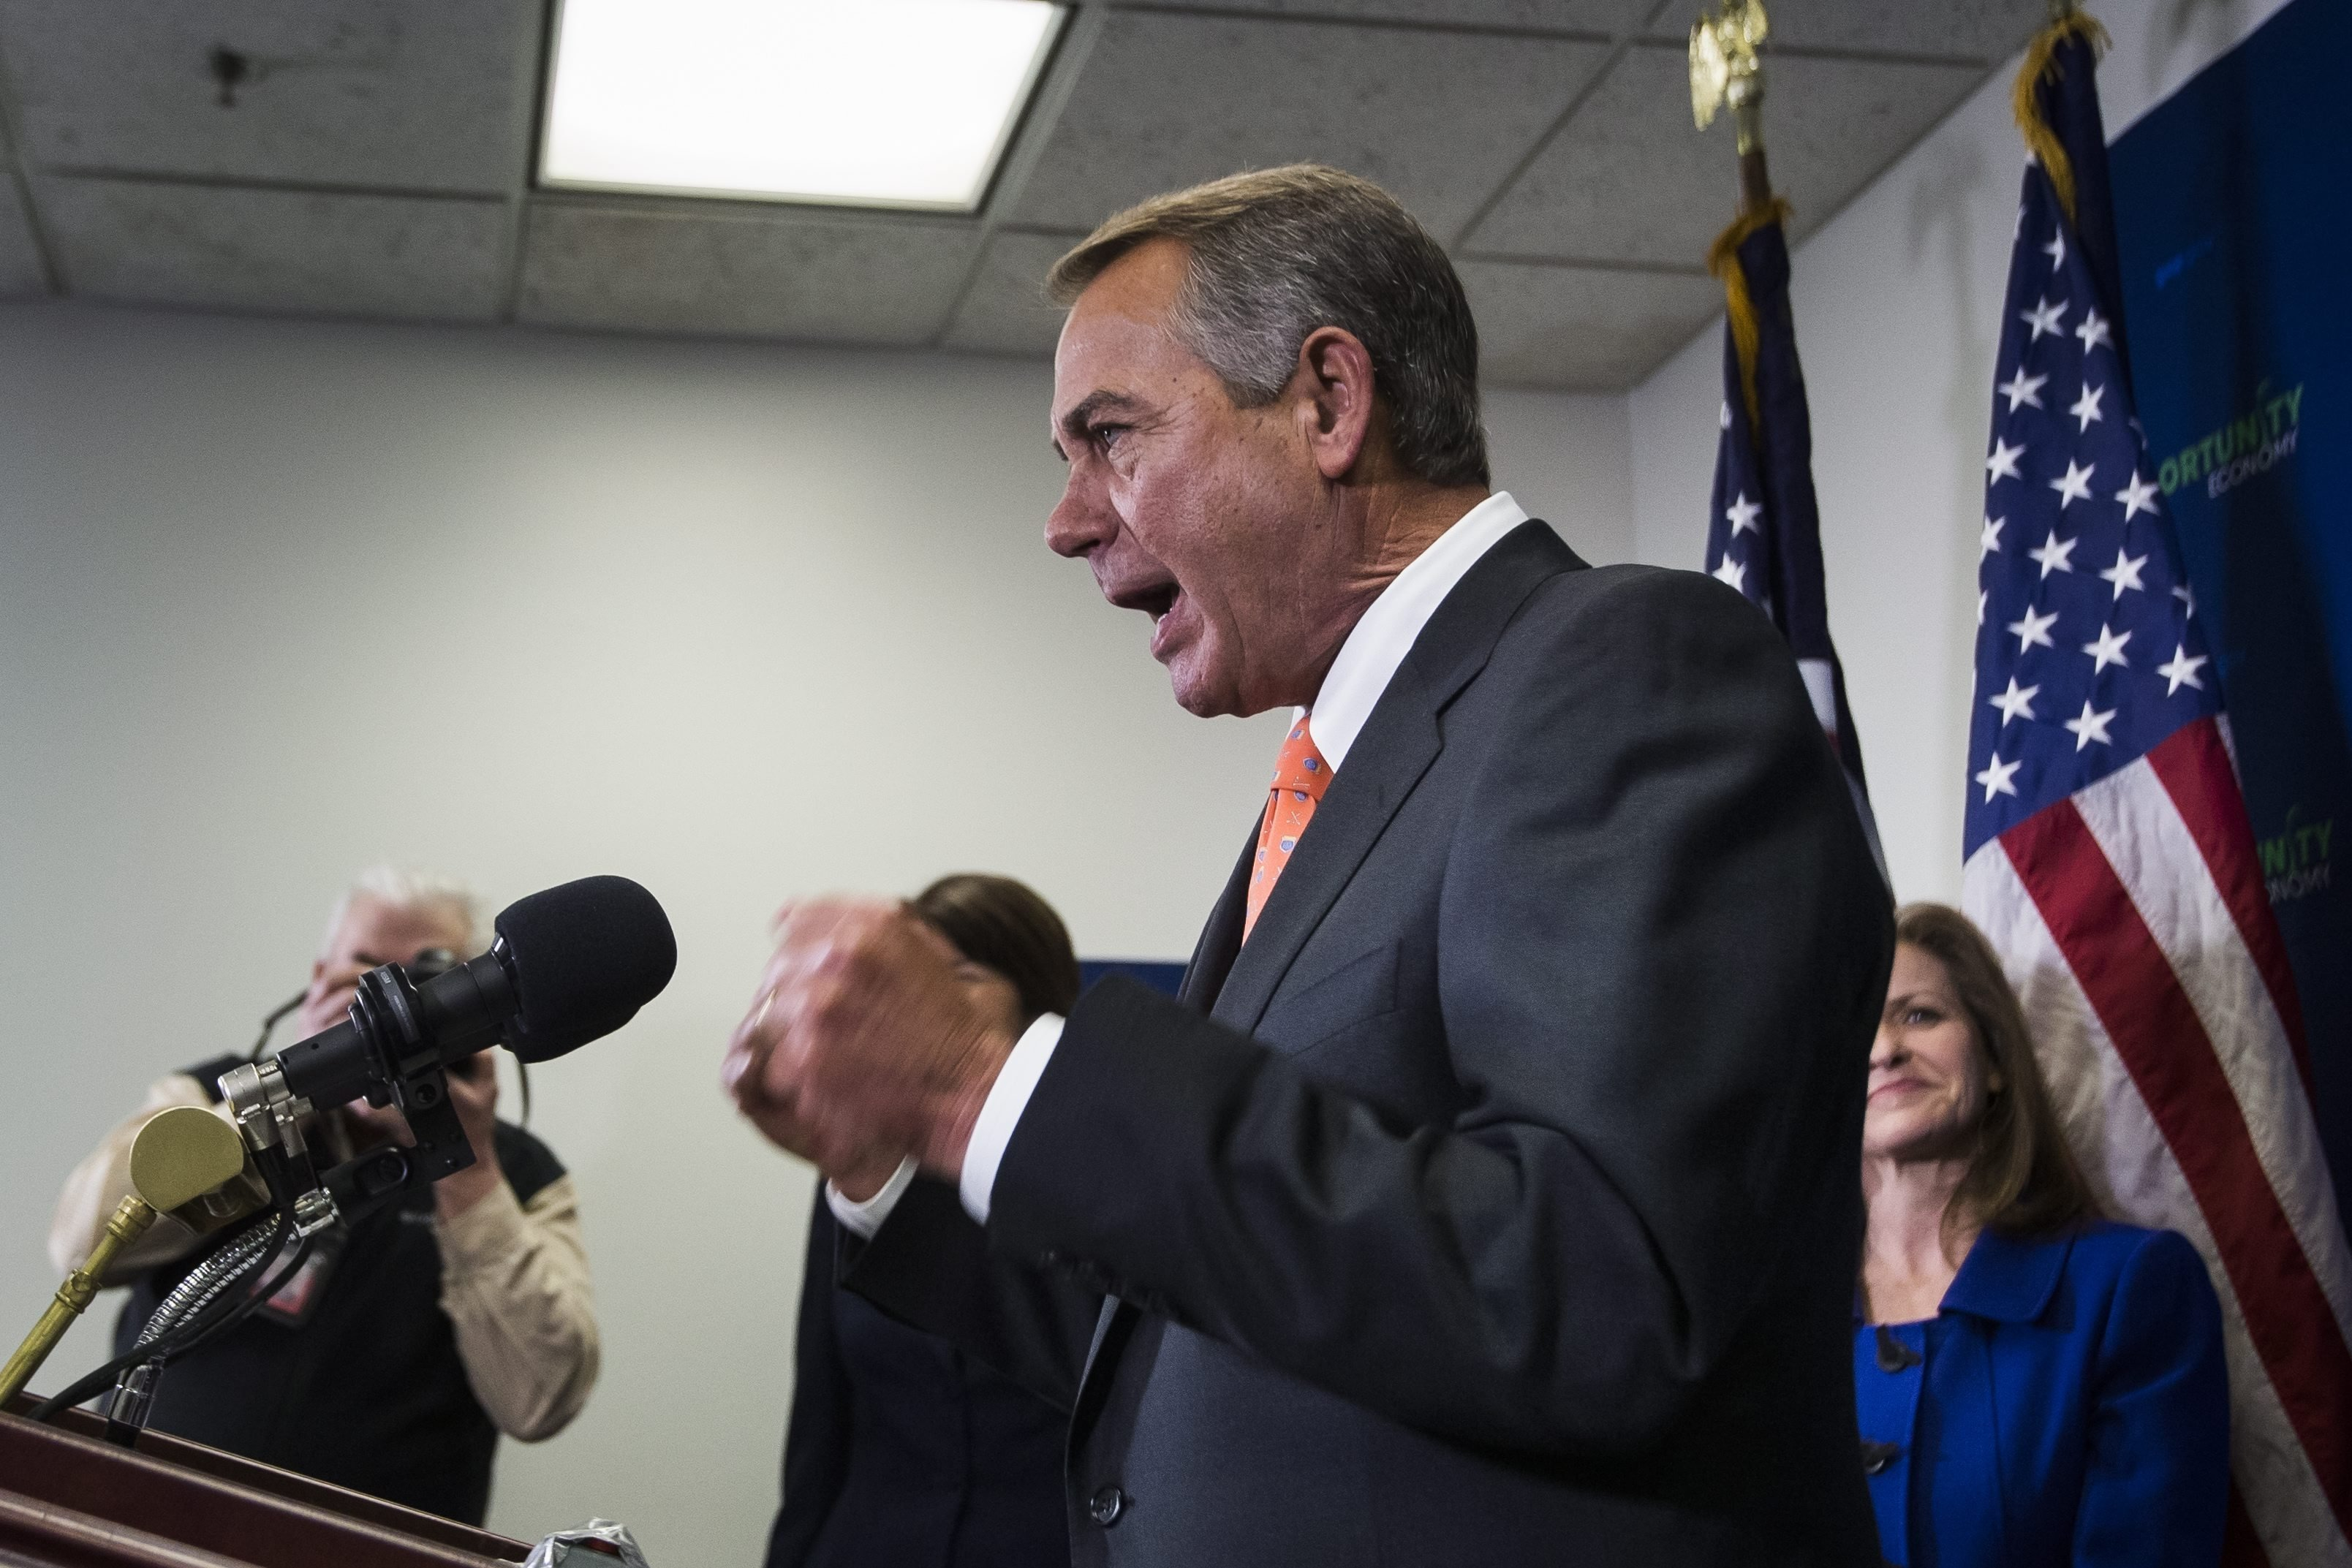 Republican Speaker of the House John Boehner speaks at a press conference about Obama's proposal seeking war authorization from congress to fight ISIS and the congressional vote on the Keystone XL Pipeline in the Capitol in Washington on Feb. 11, 2015.